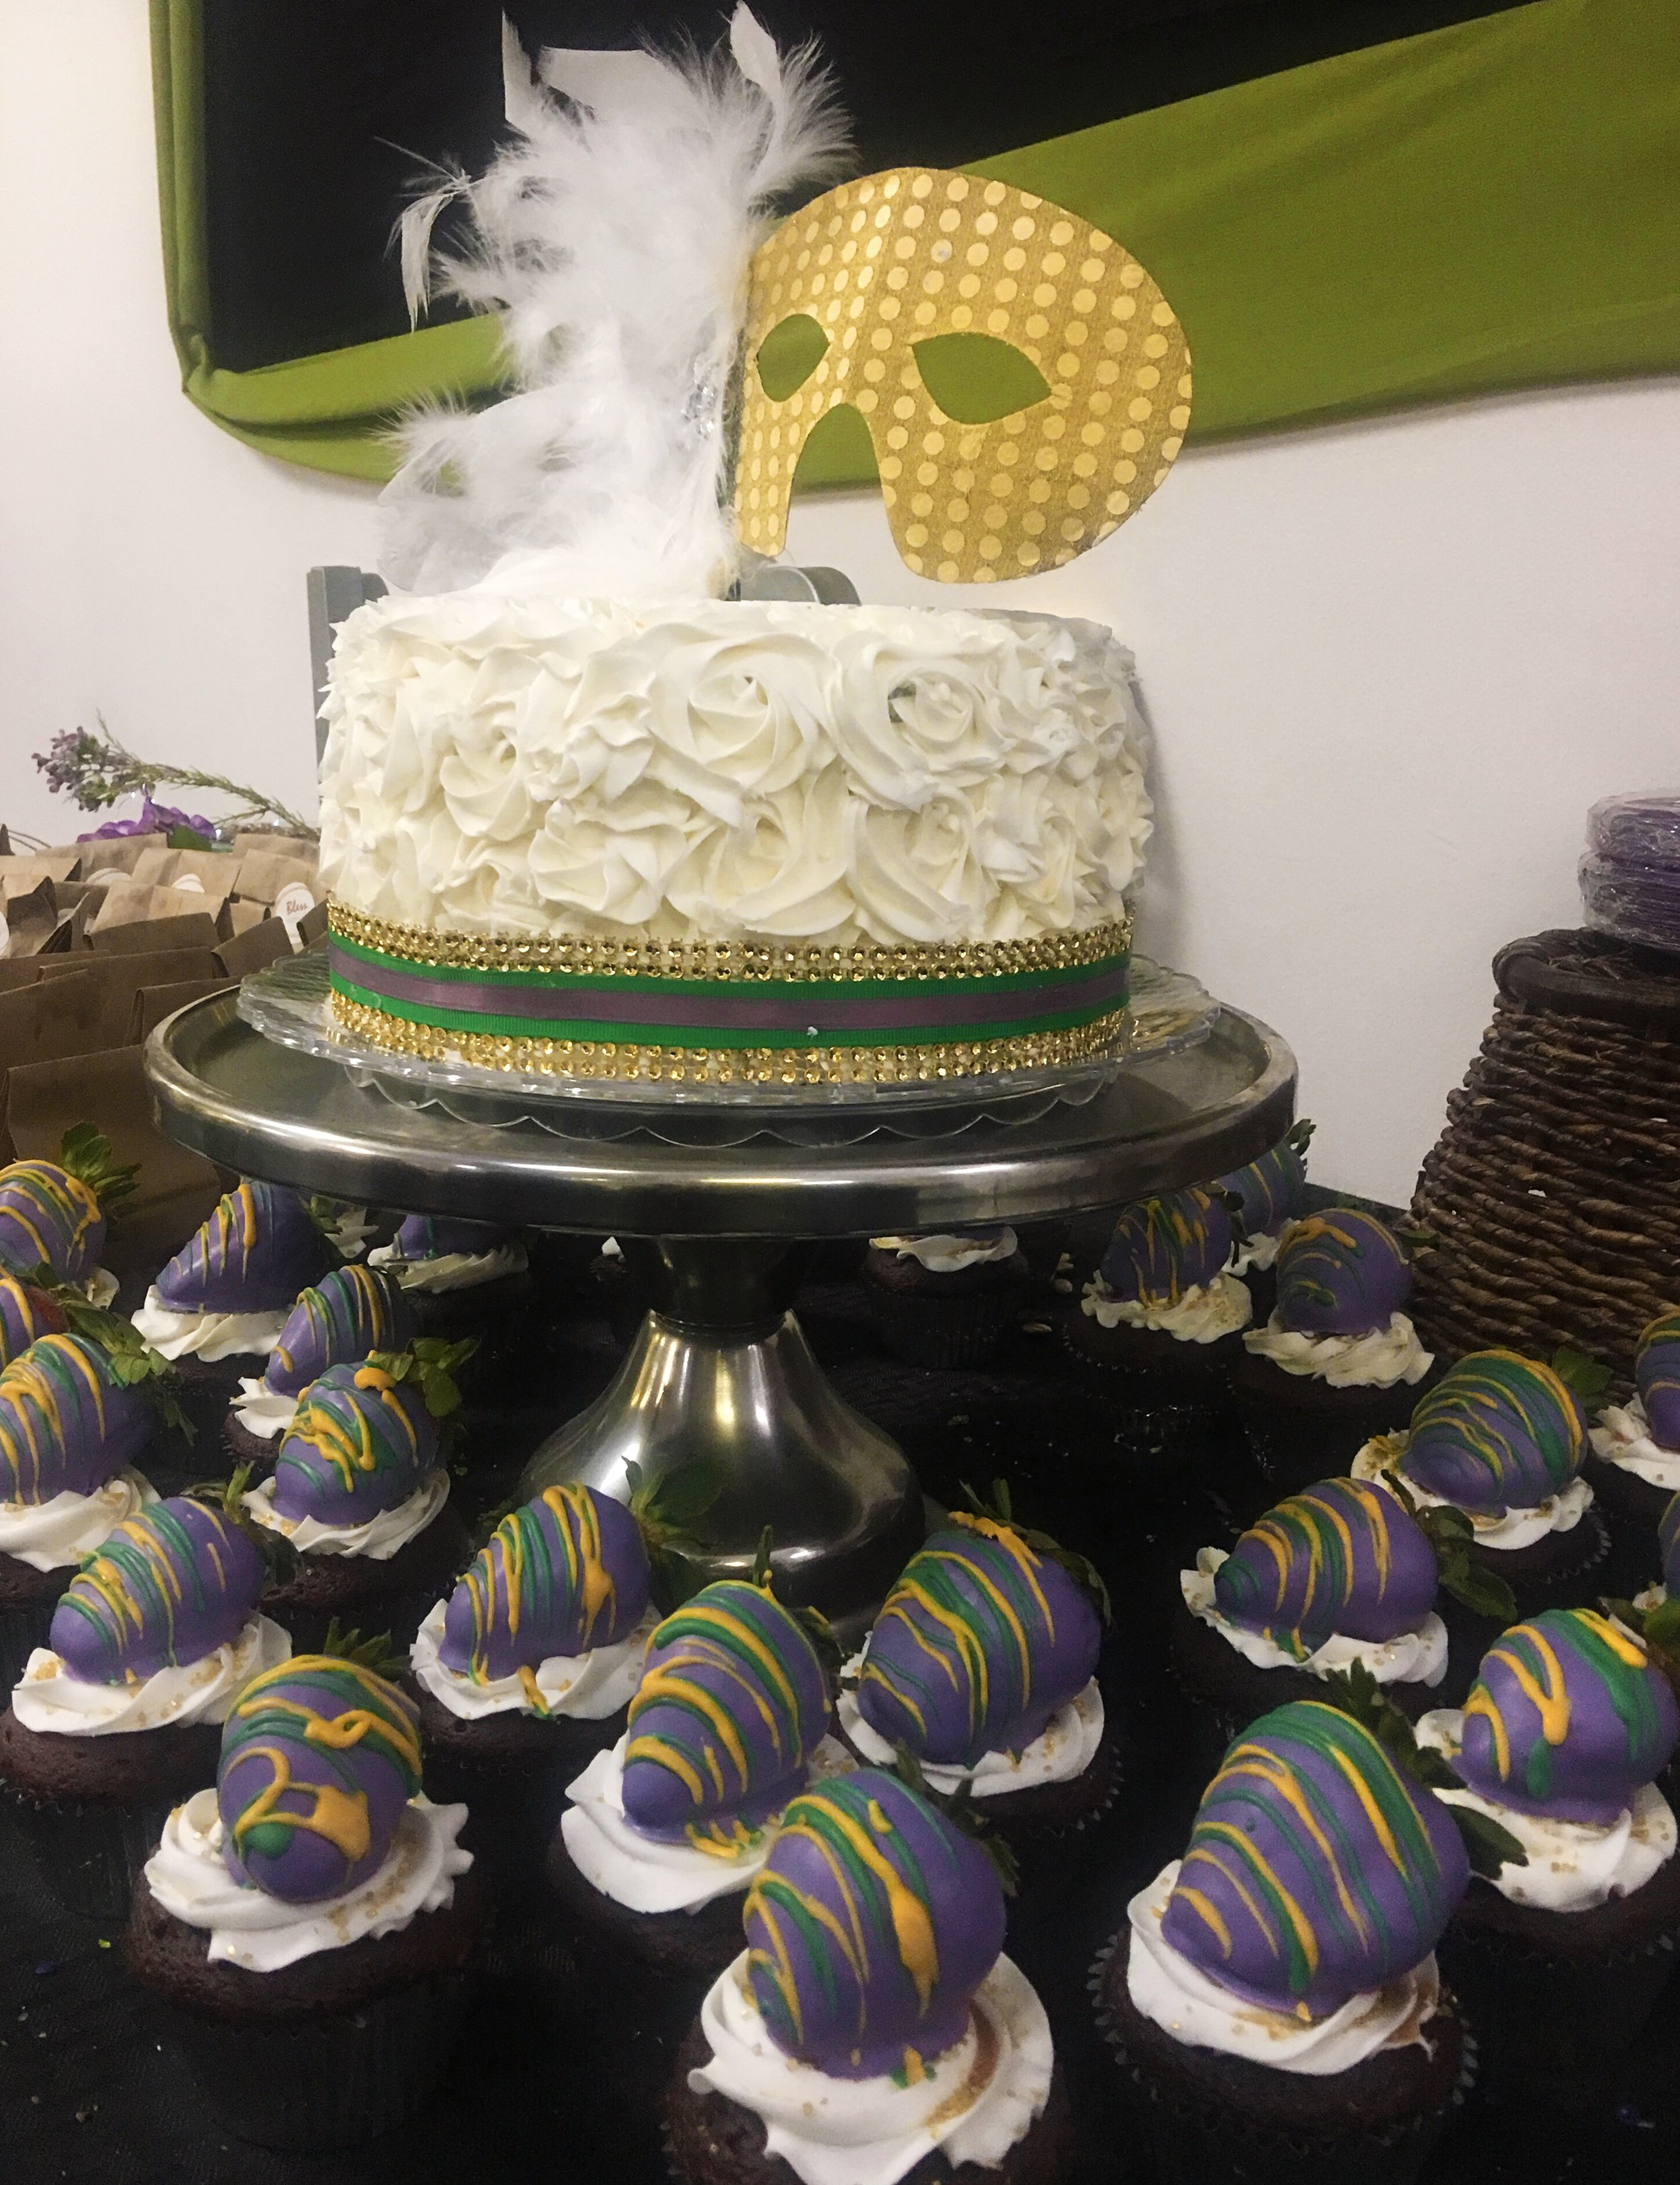 Mardi Gras Themed Cake and Cupcakes by Liz Vazquez (owner & operator of LV Confections & Catering)